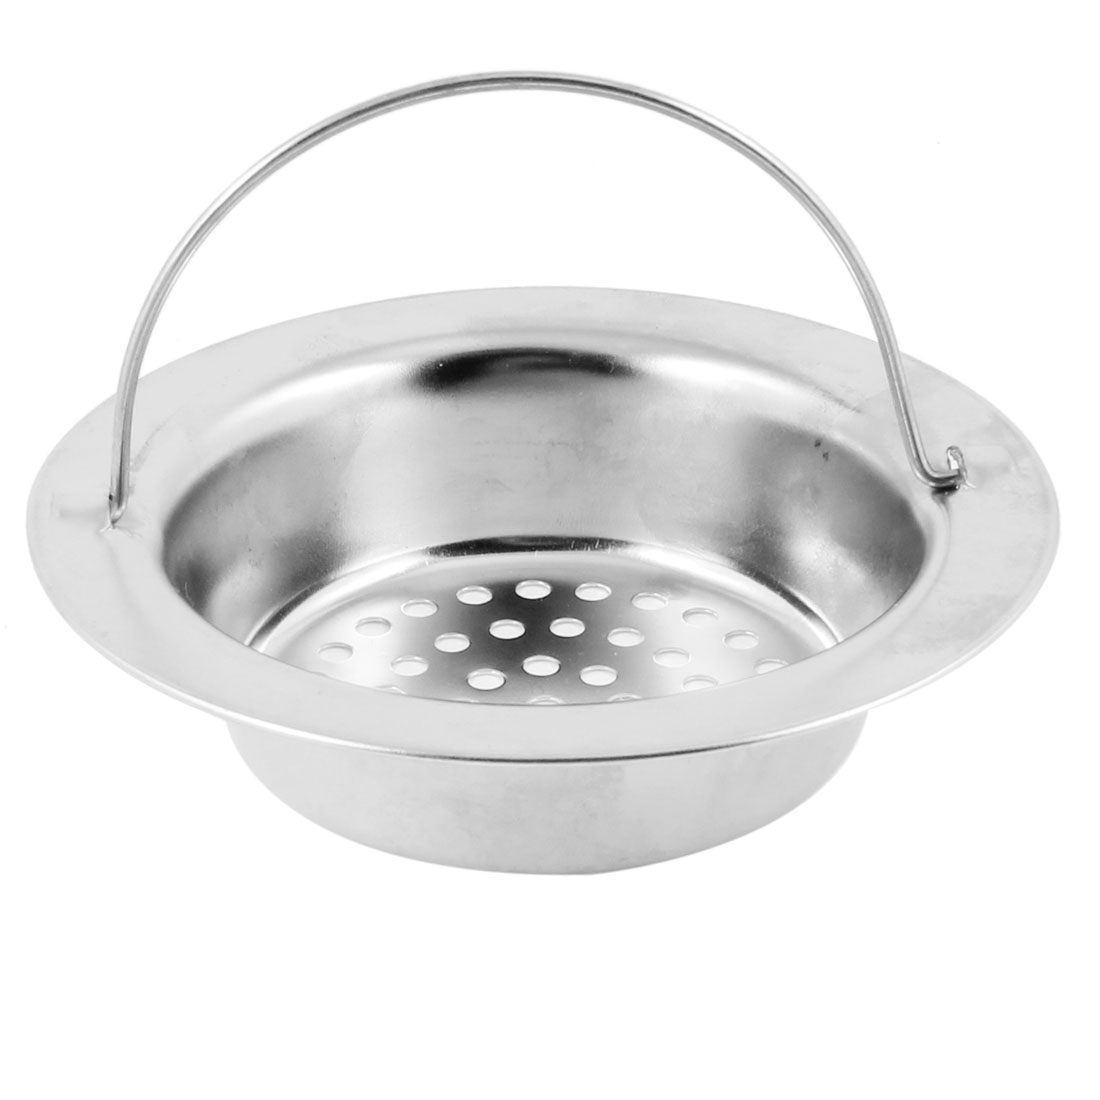 Bathroom Silver Tone Stainless Steel Floor Drain 8.5-9.5cm Dia Strainer Cover - image 1 of 1